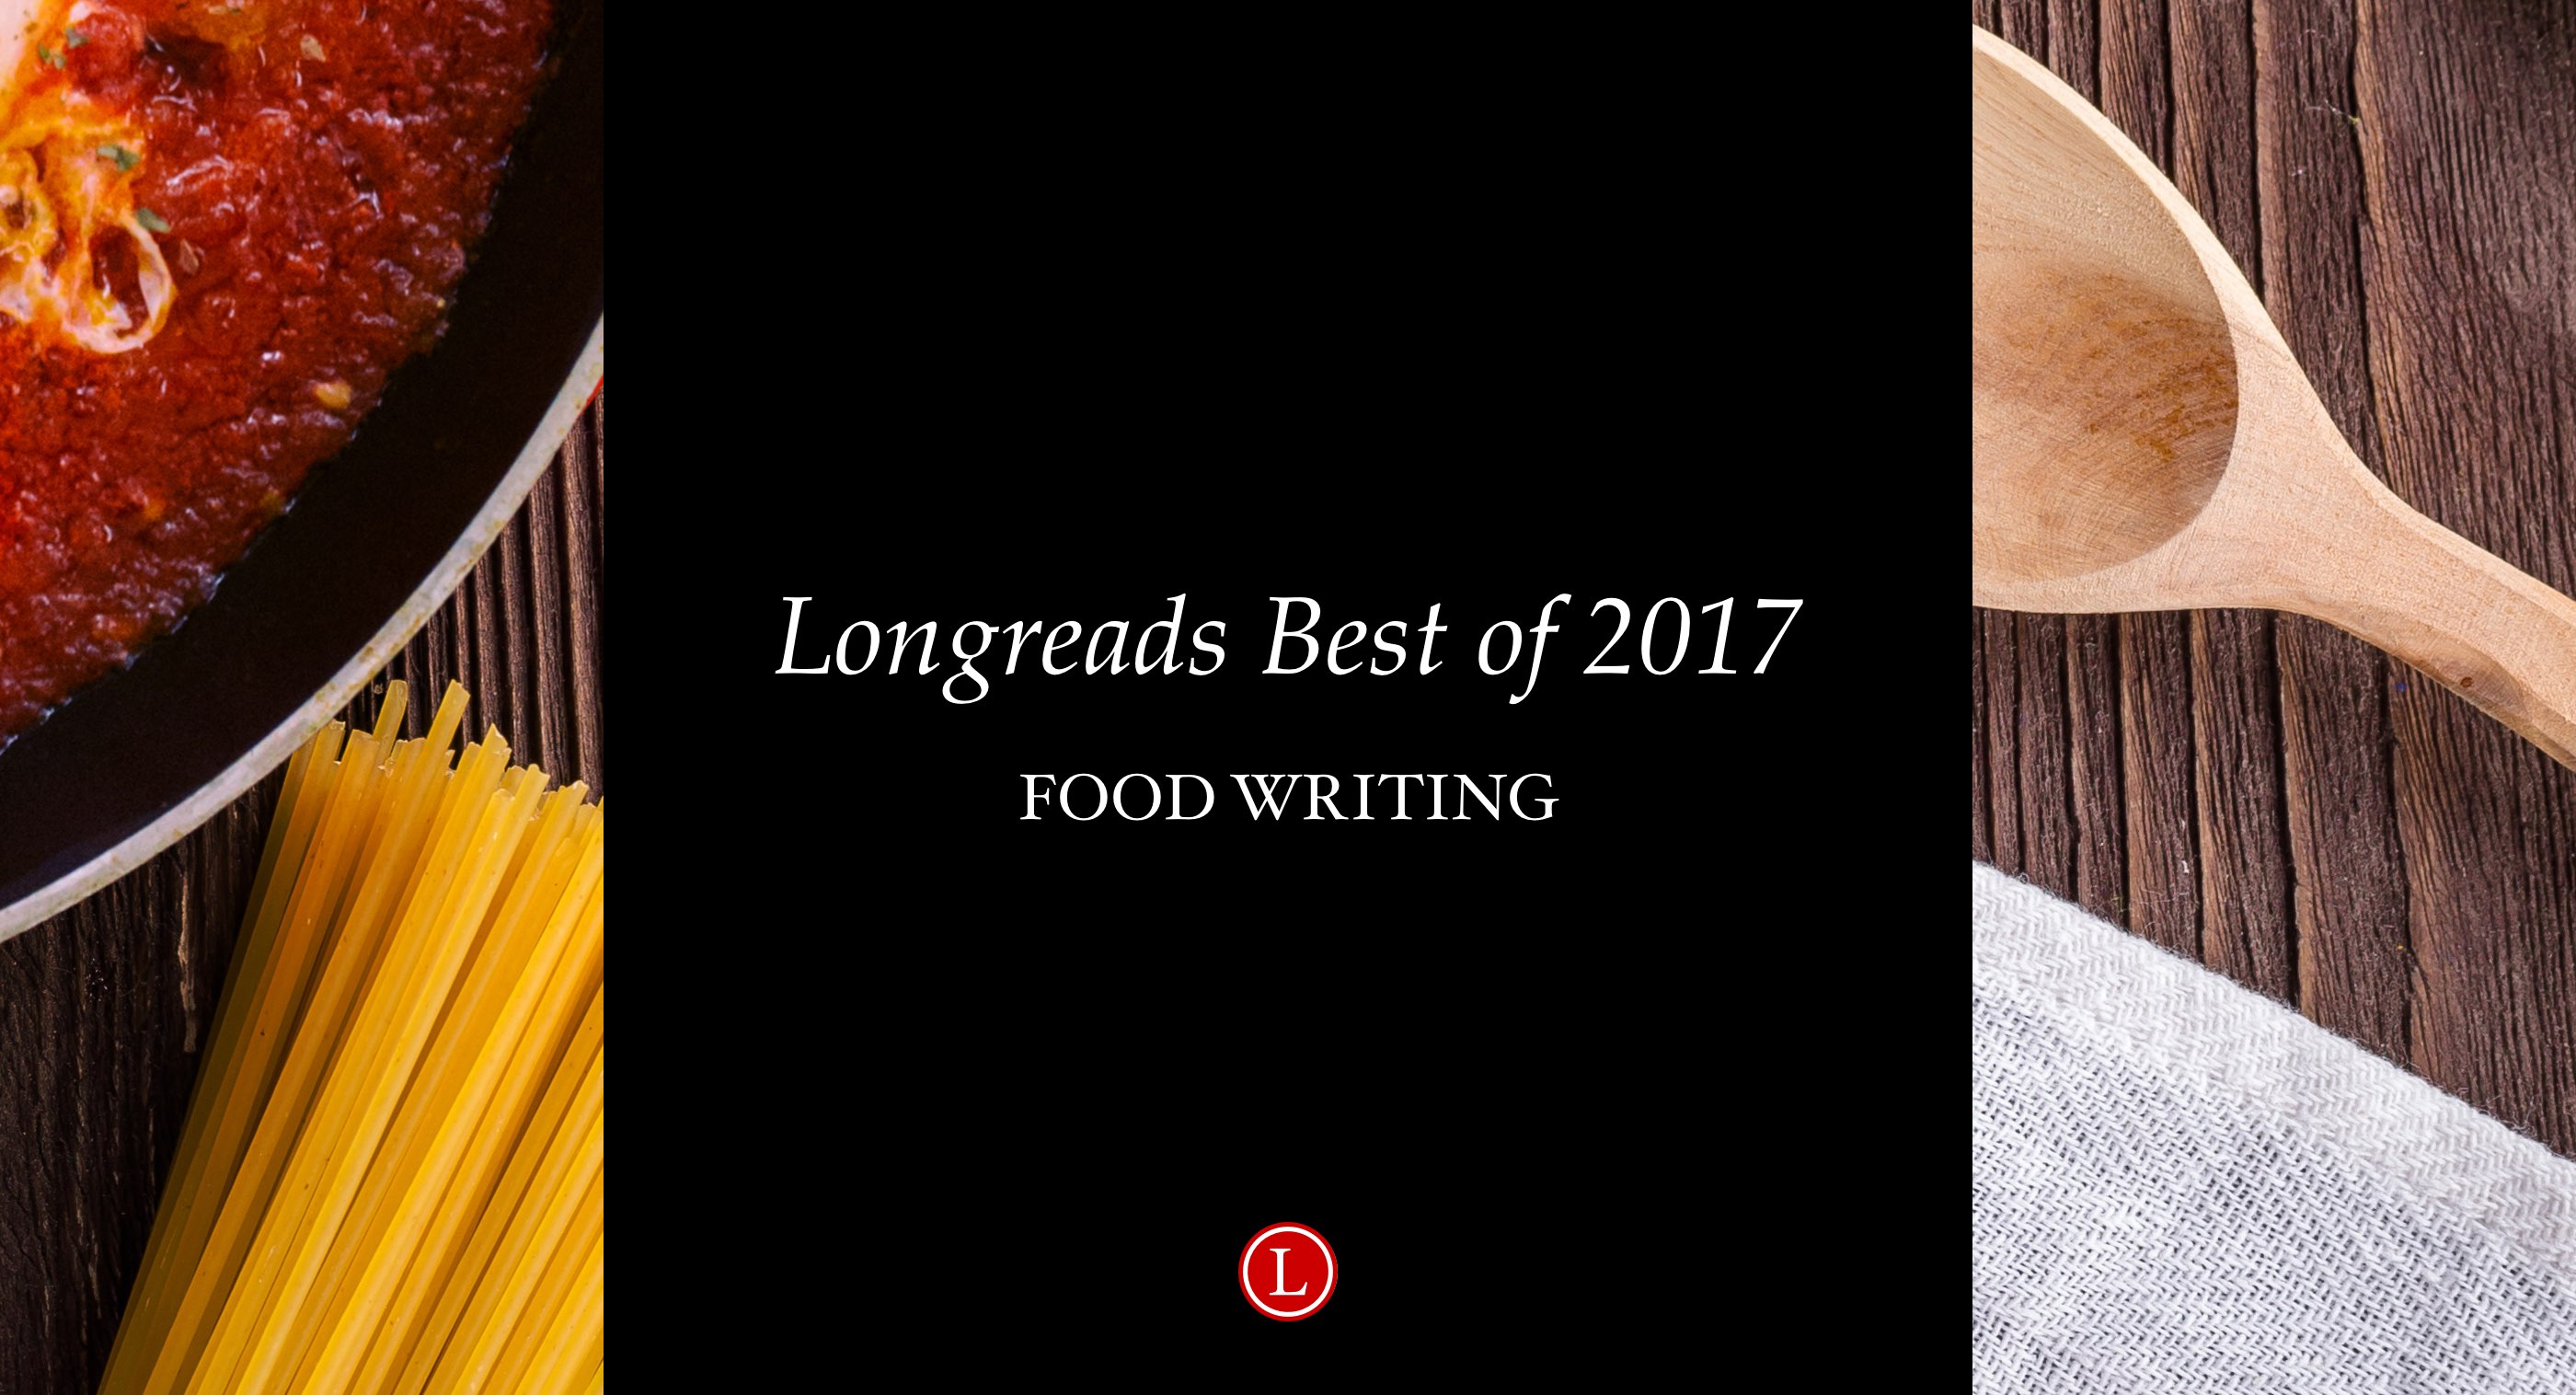 Longreads Best of 2017: Food Writing